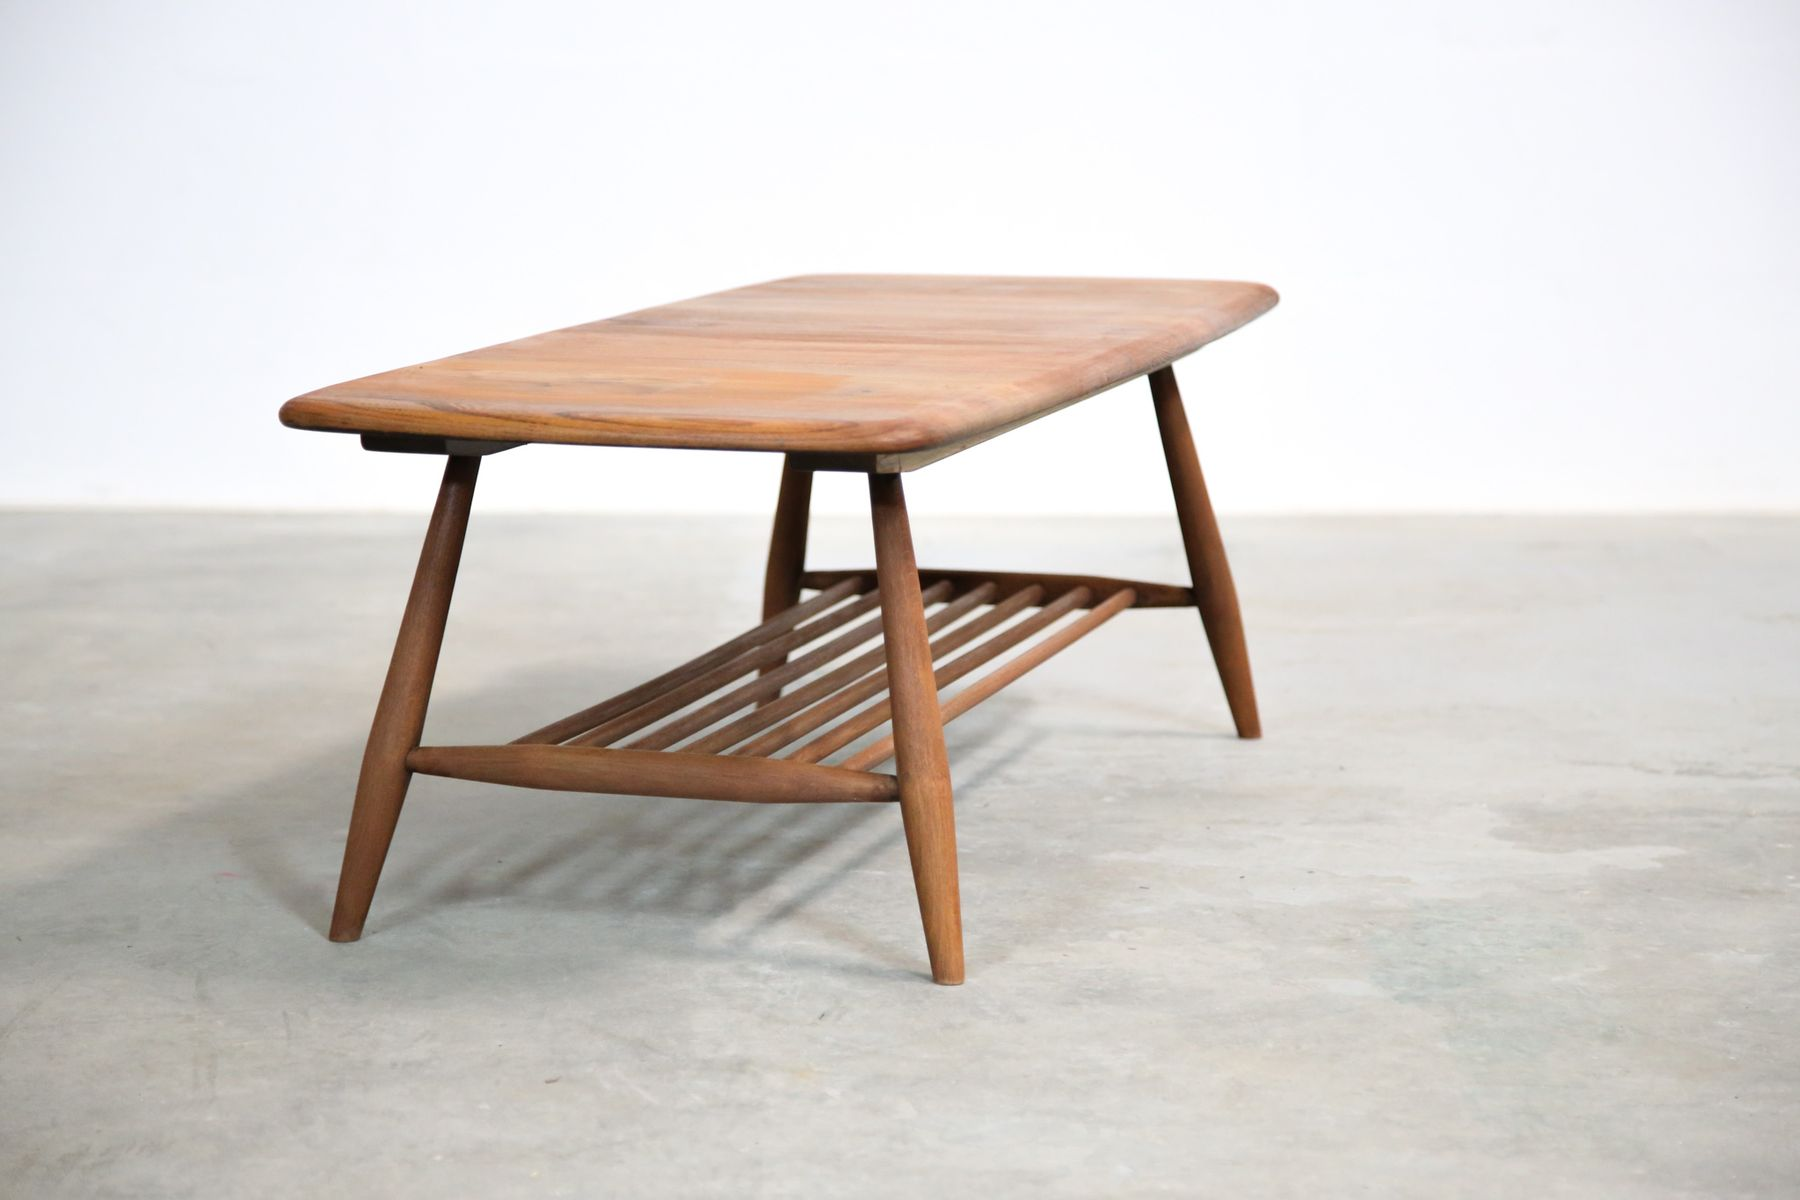 Oak Beech Coffee Table By Lucian Ercolani For Ercol 1960s For Sale At Pamono